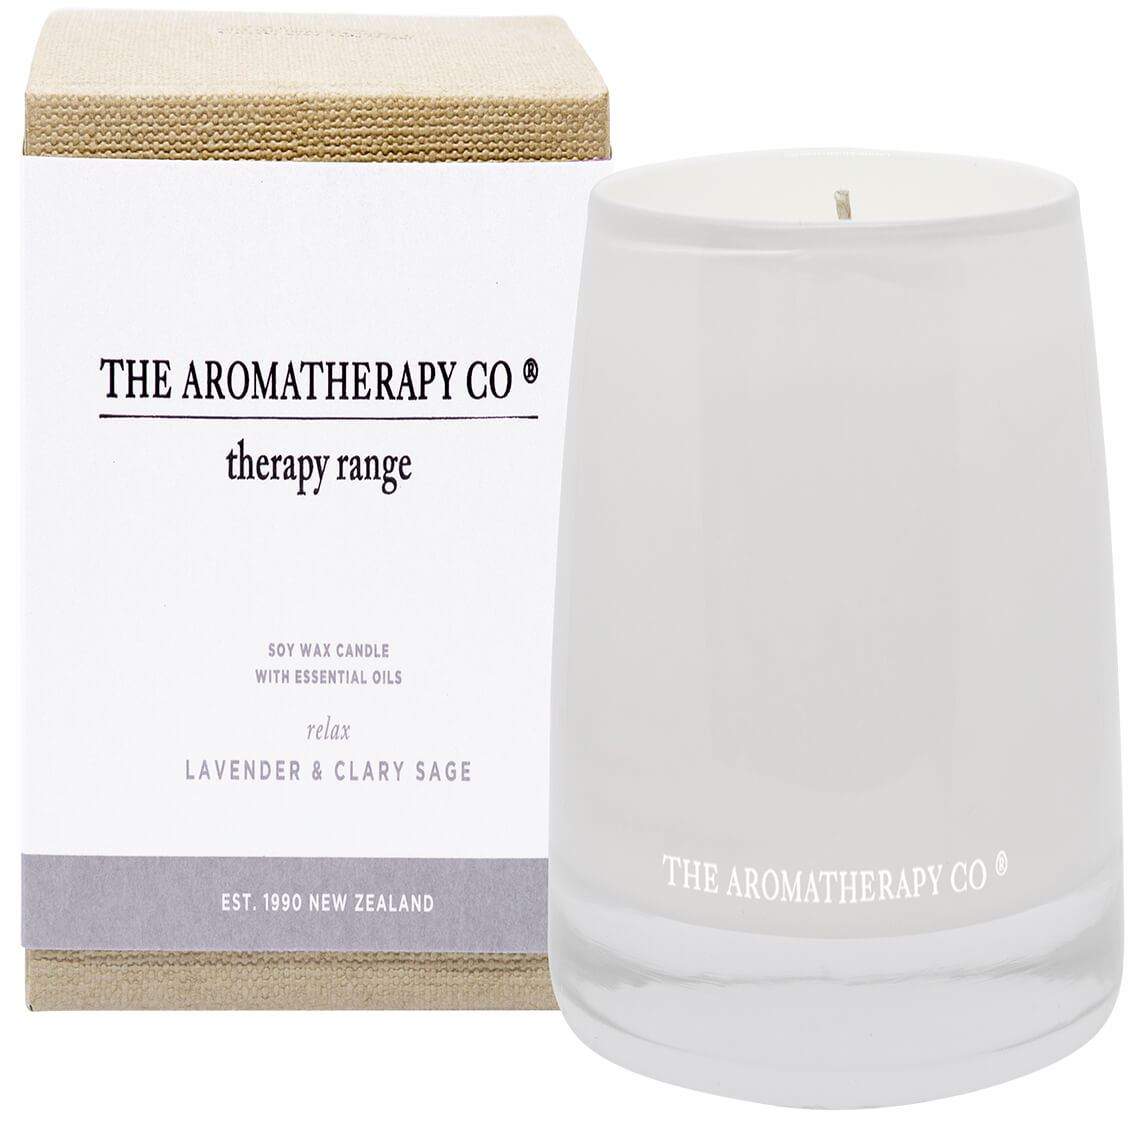 Therapy Candle Lavender And Clary Sage Size W 11cm x D 11cm x H 10cm in Lavender/Clary Sage Freedom